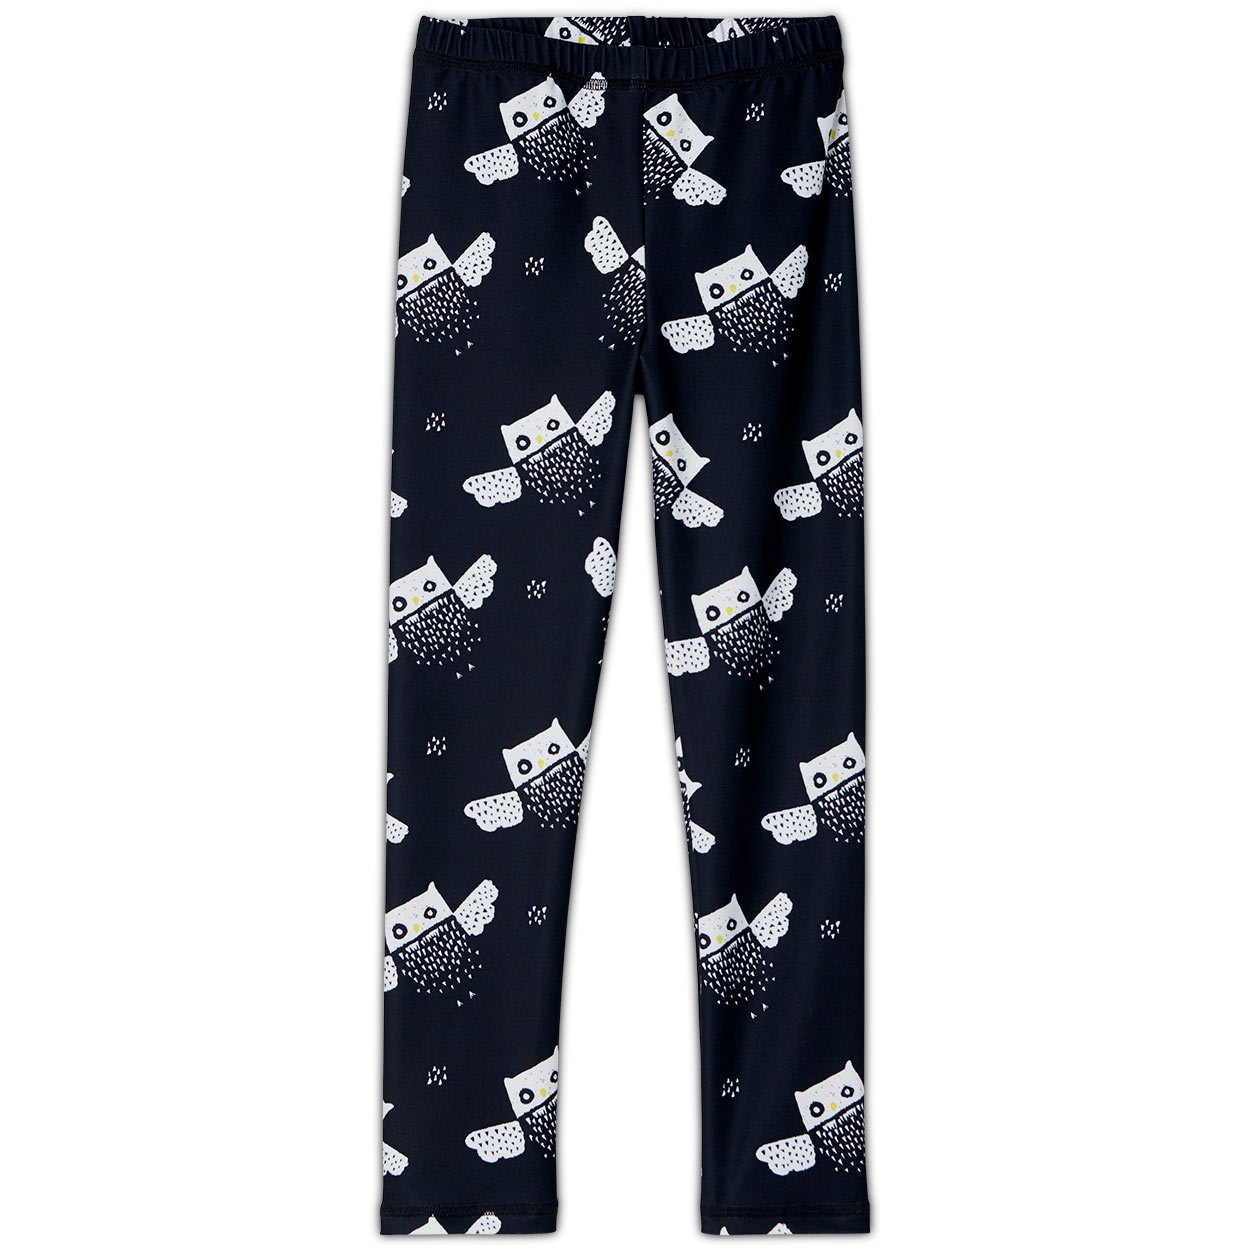 Owls Sunblocker Leggings UPF 50+